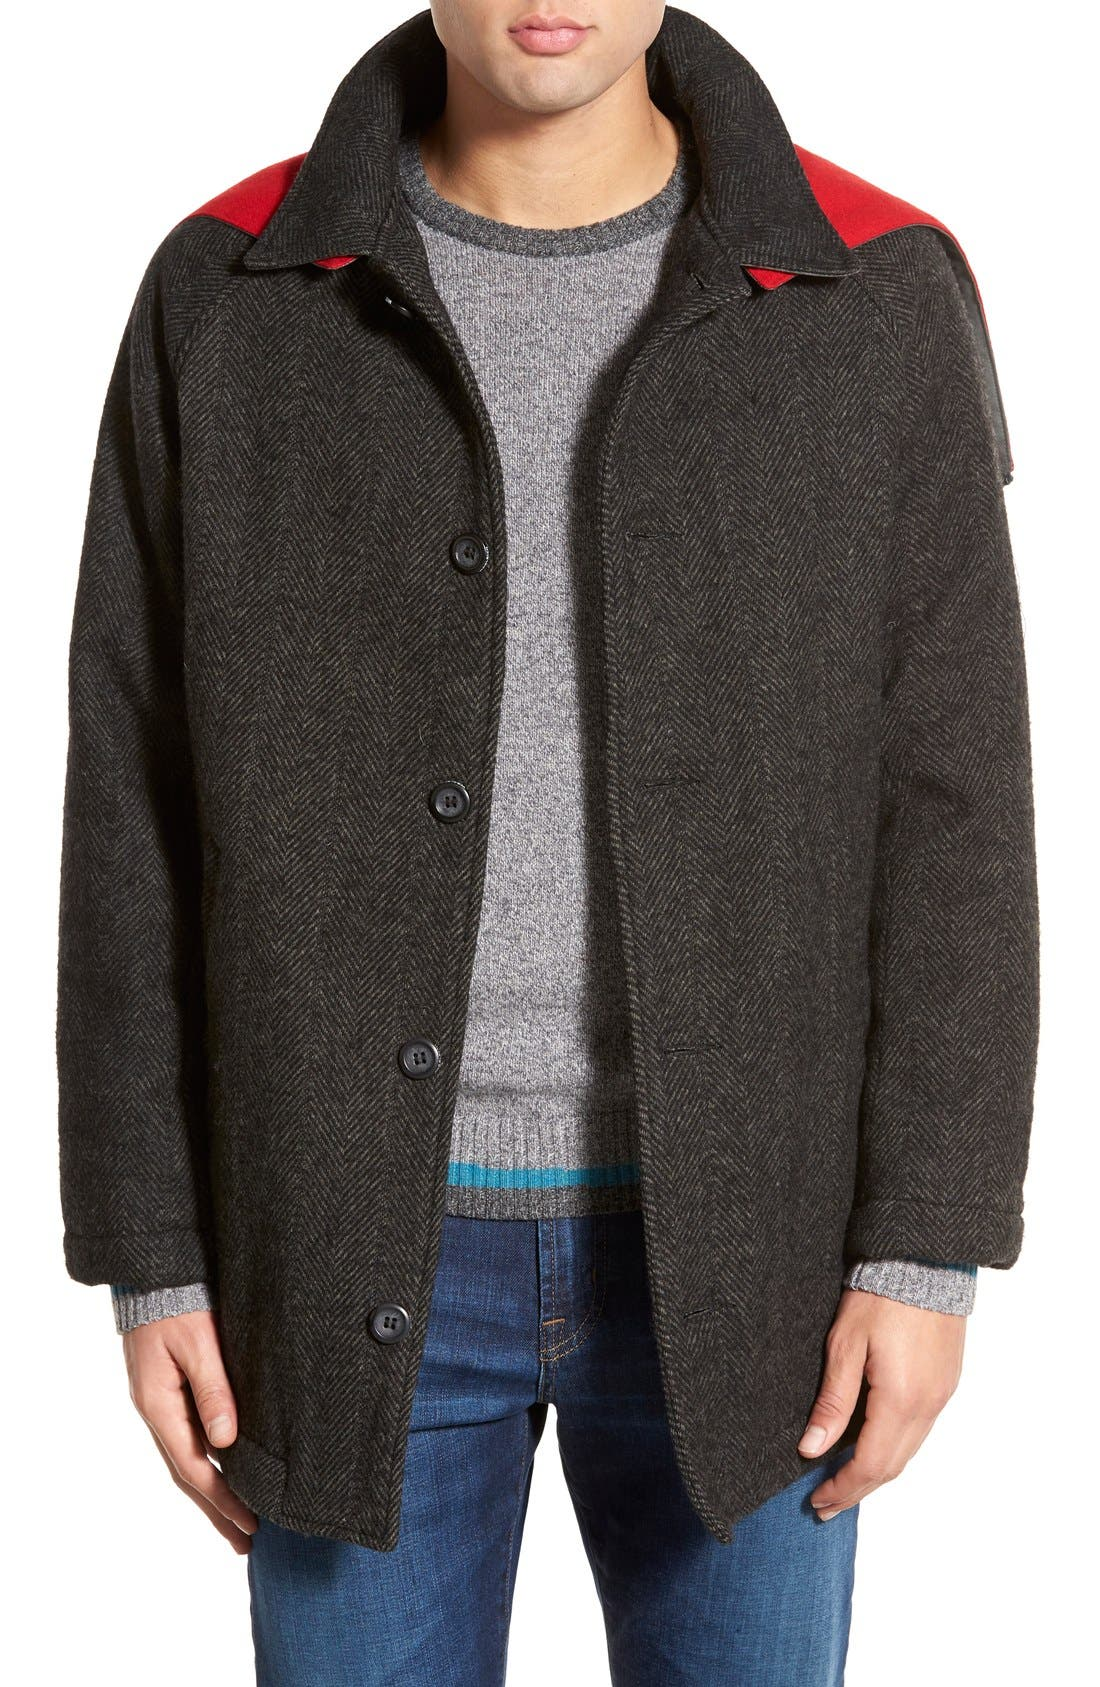 Main Image - Woolrich 'Mill' Water Resistant Herringbone Wool Blend Car Coat with Detachable Hood